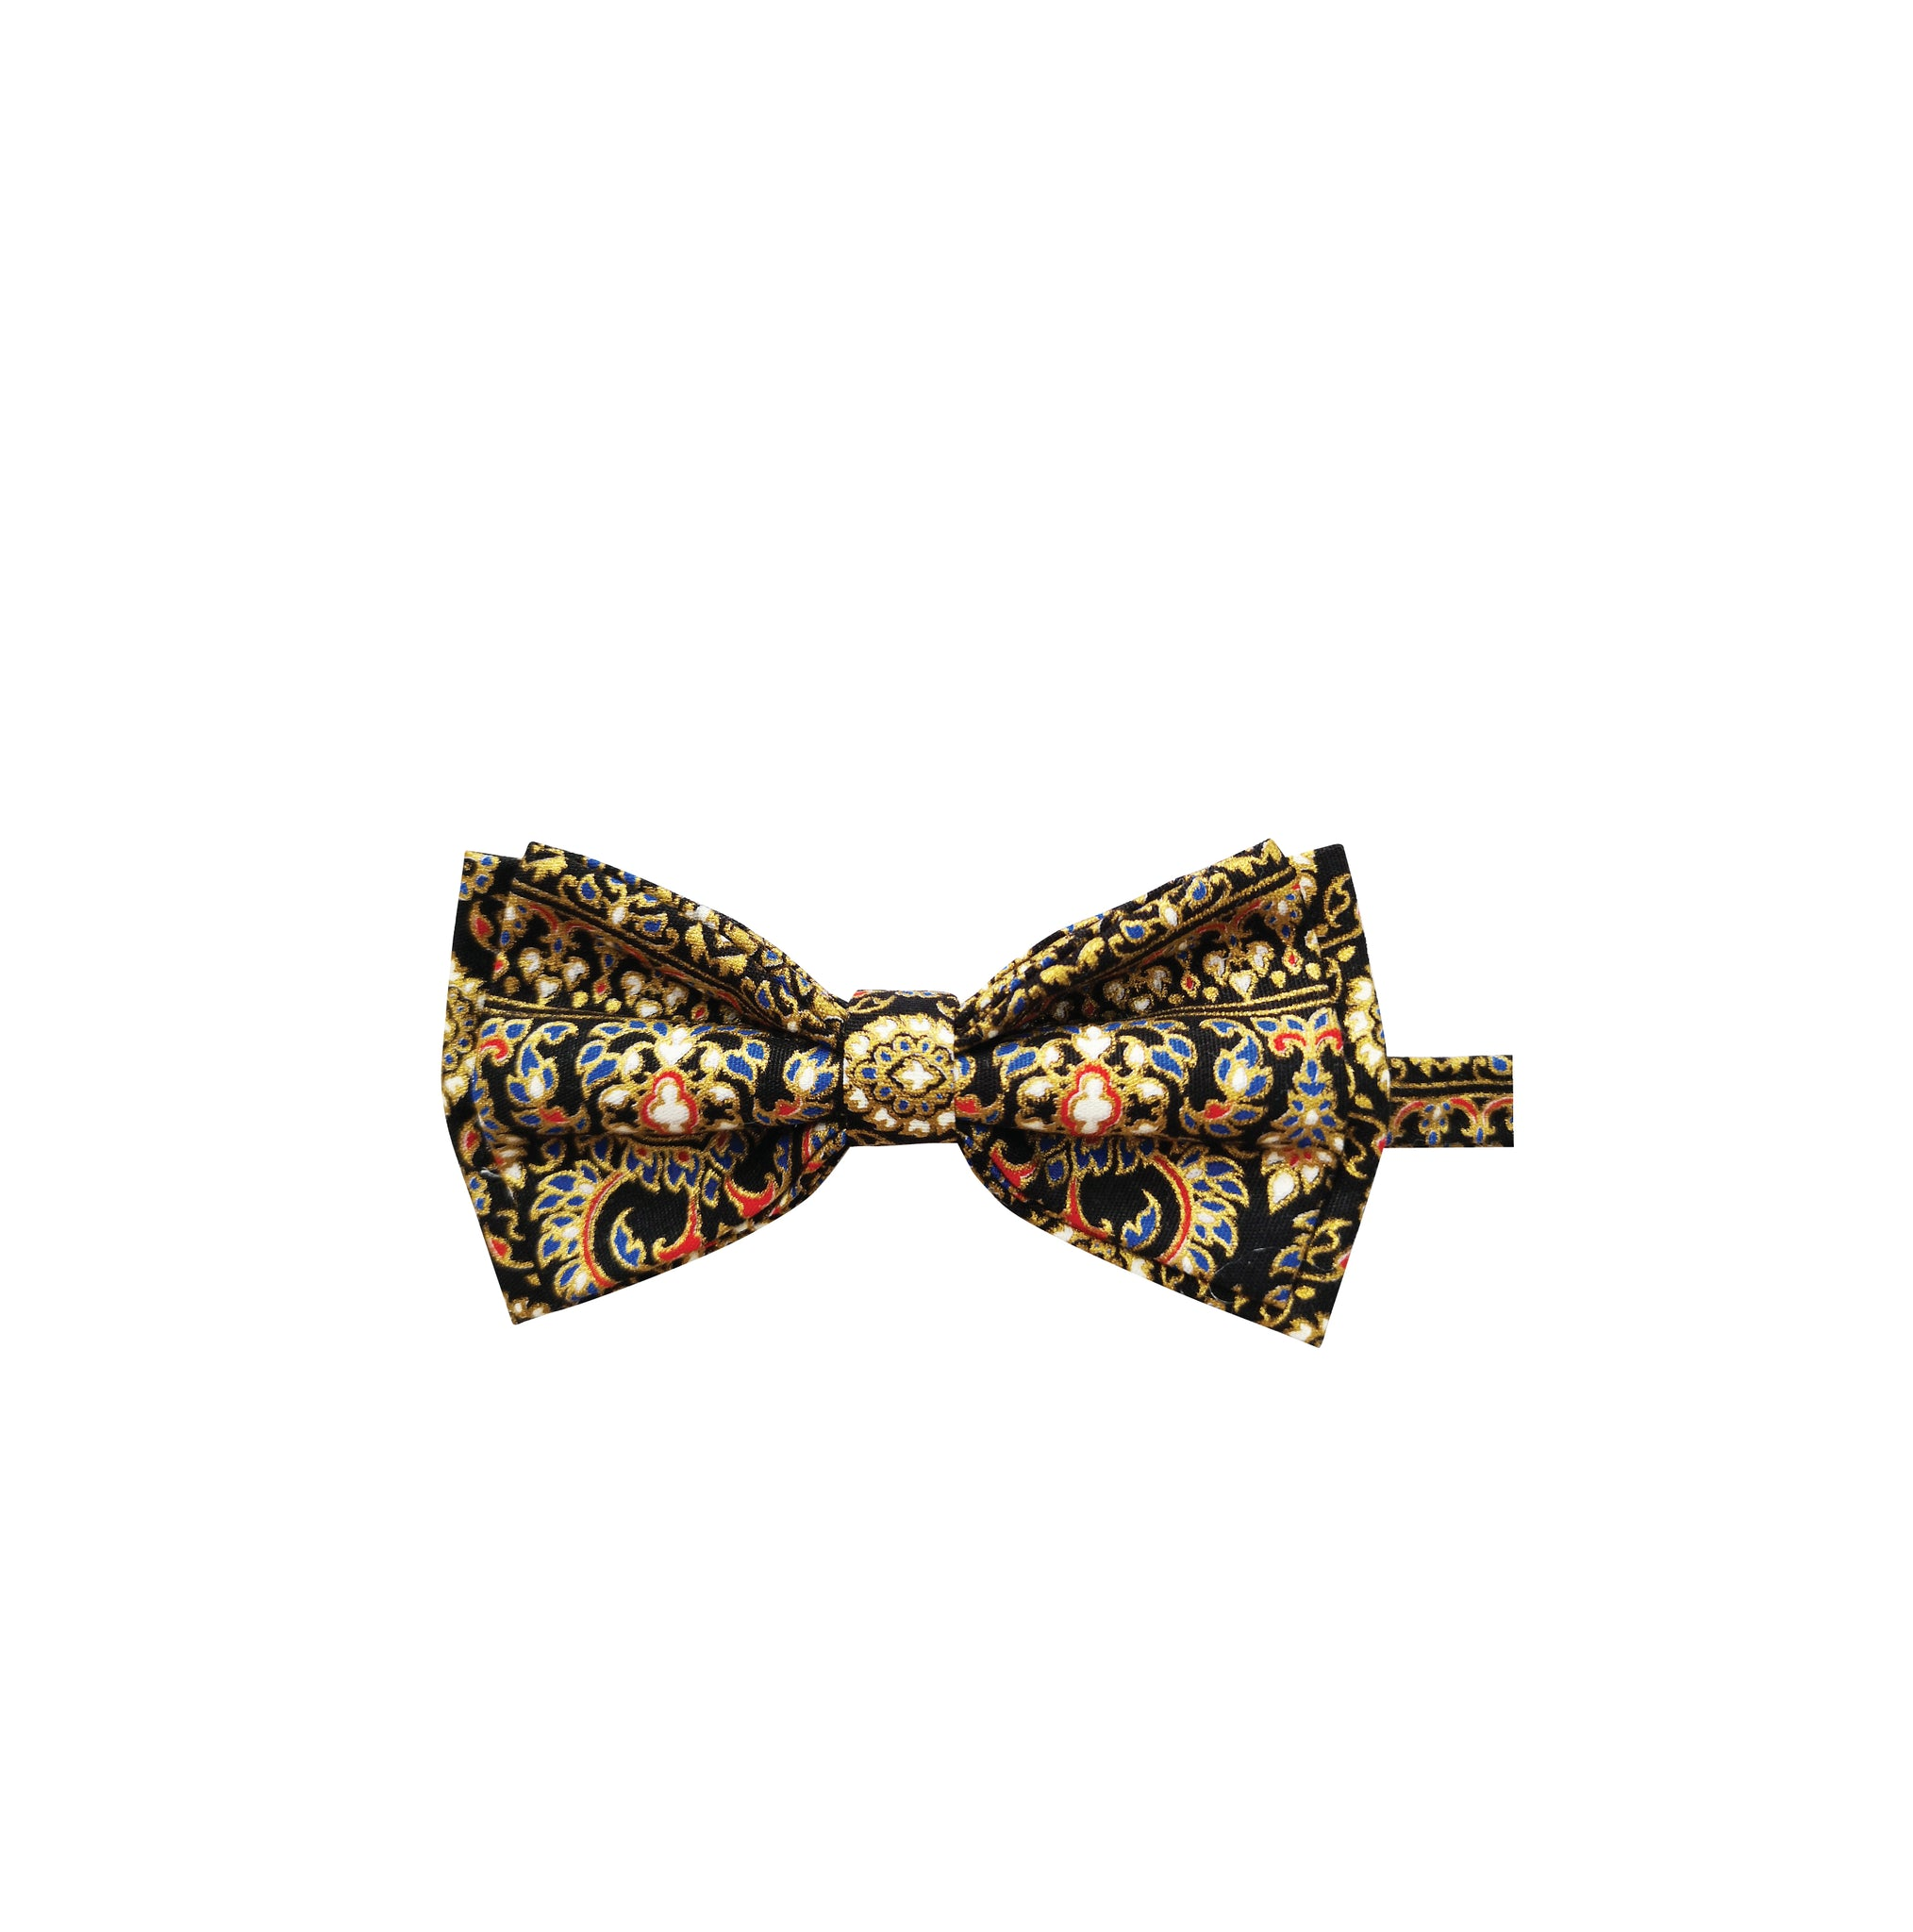 THE AQUIL B BOWTIE